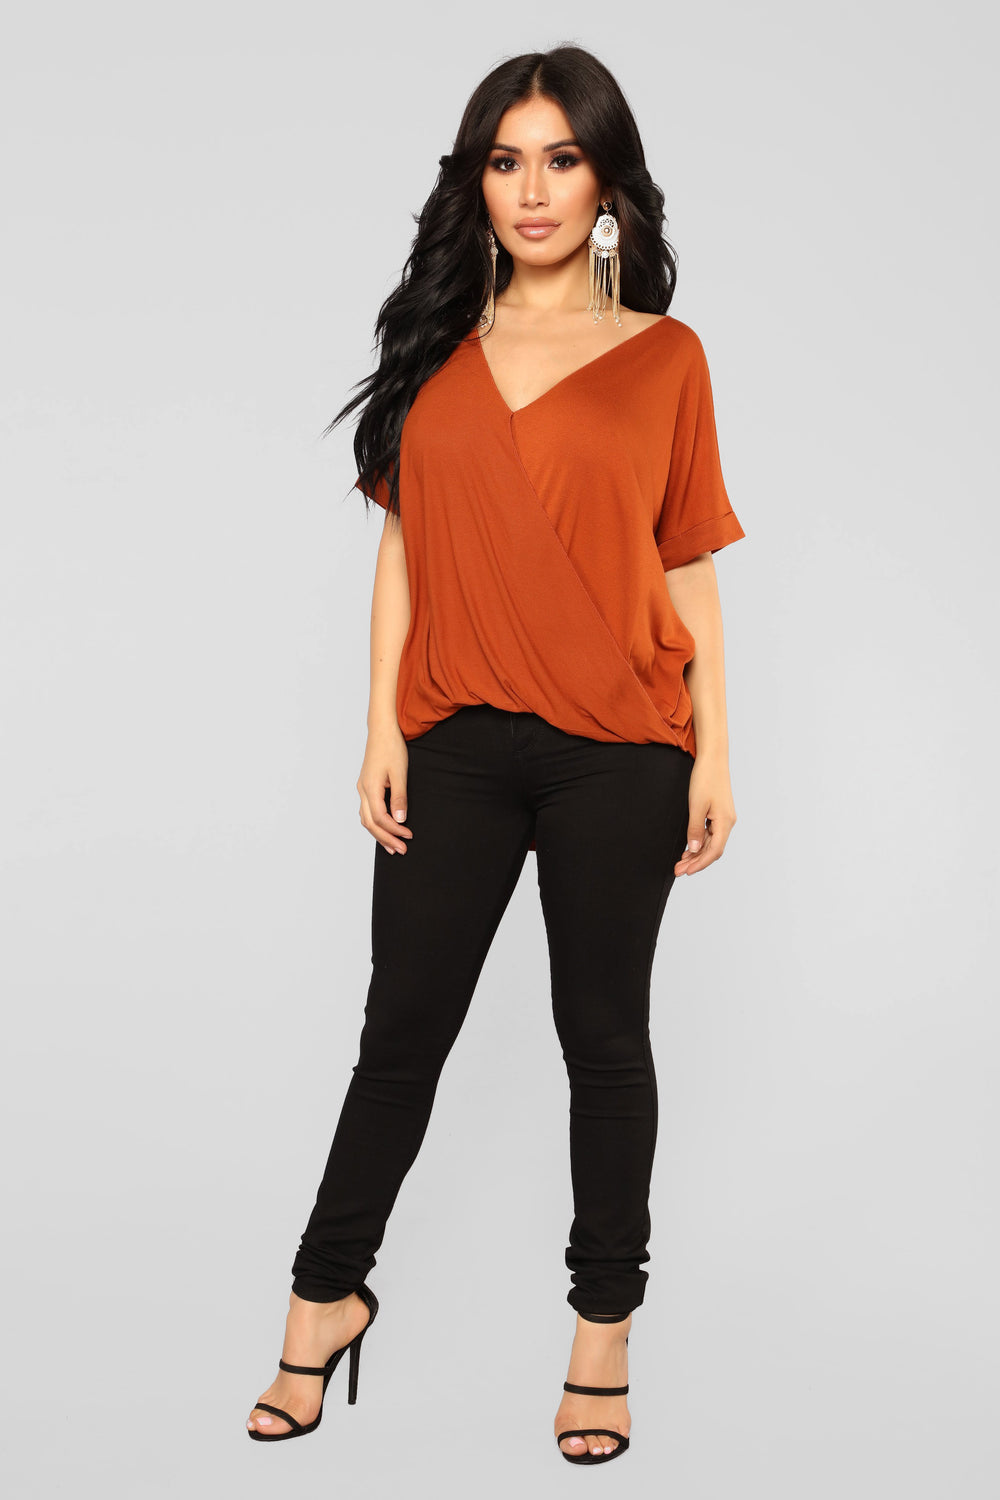 Know Myself Surplice Top - Rust